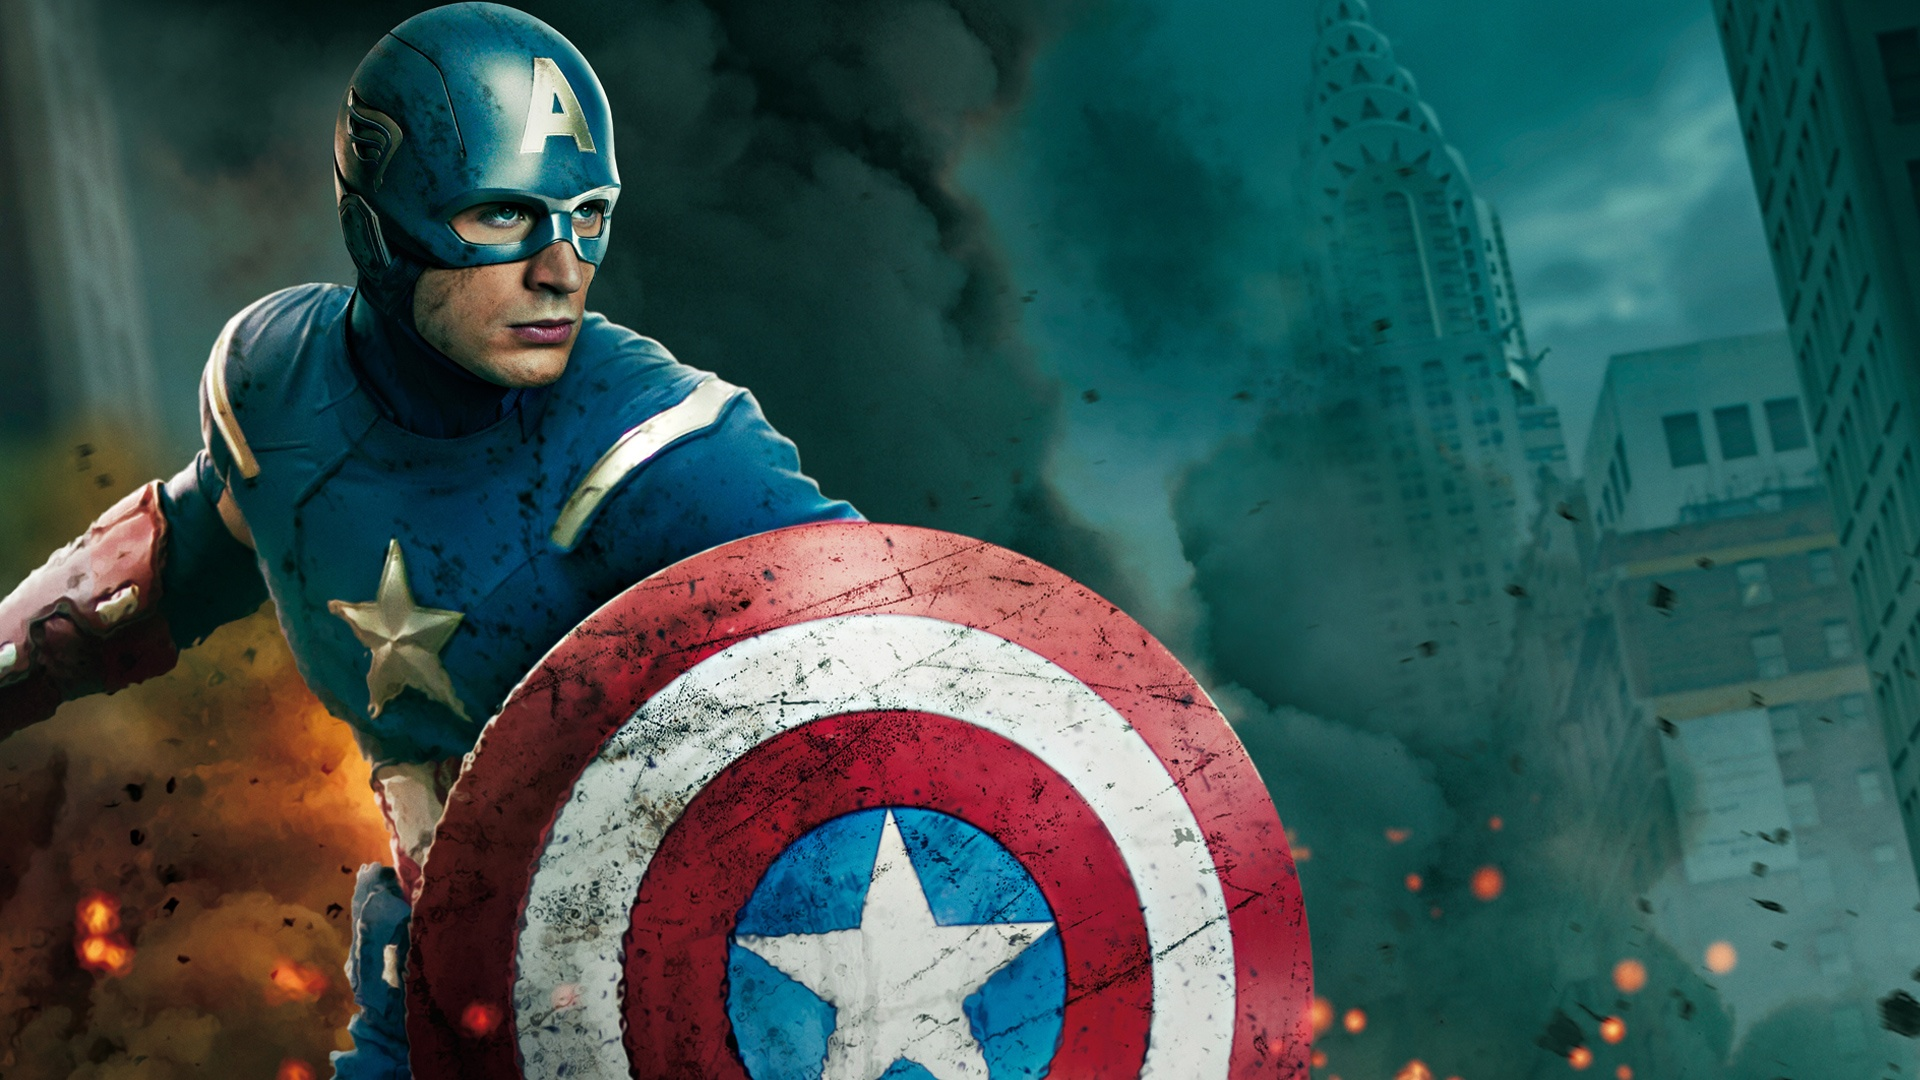 The Avengers Captain America Wallpapers HD Wallpapers 1920x1080